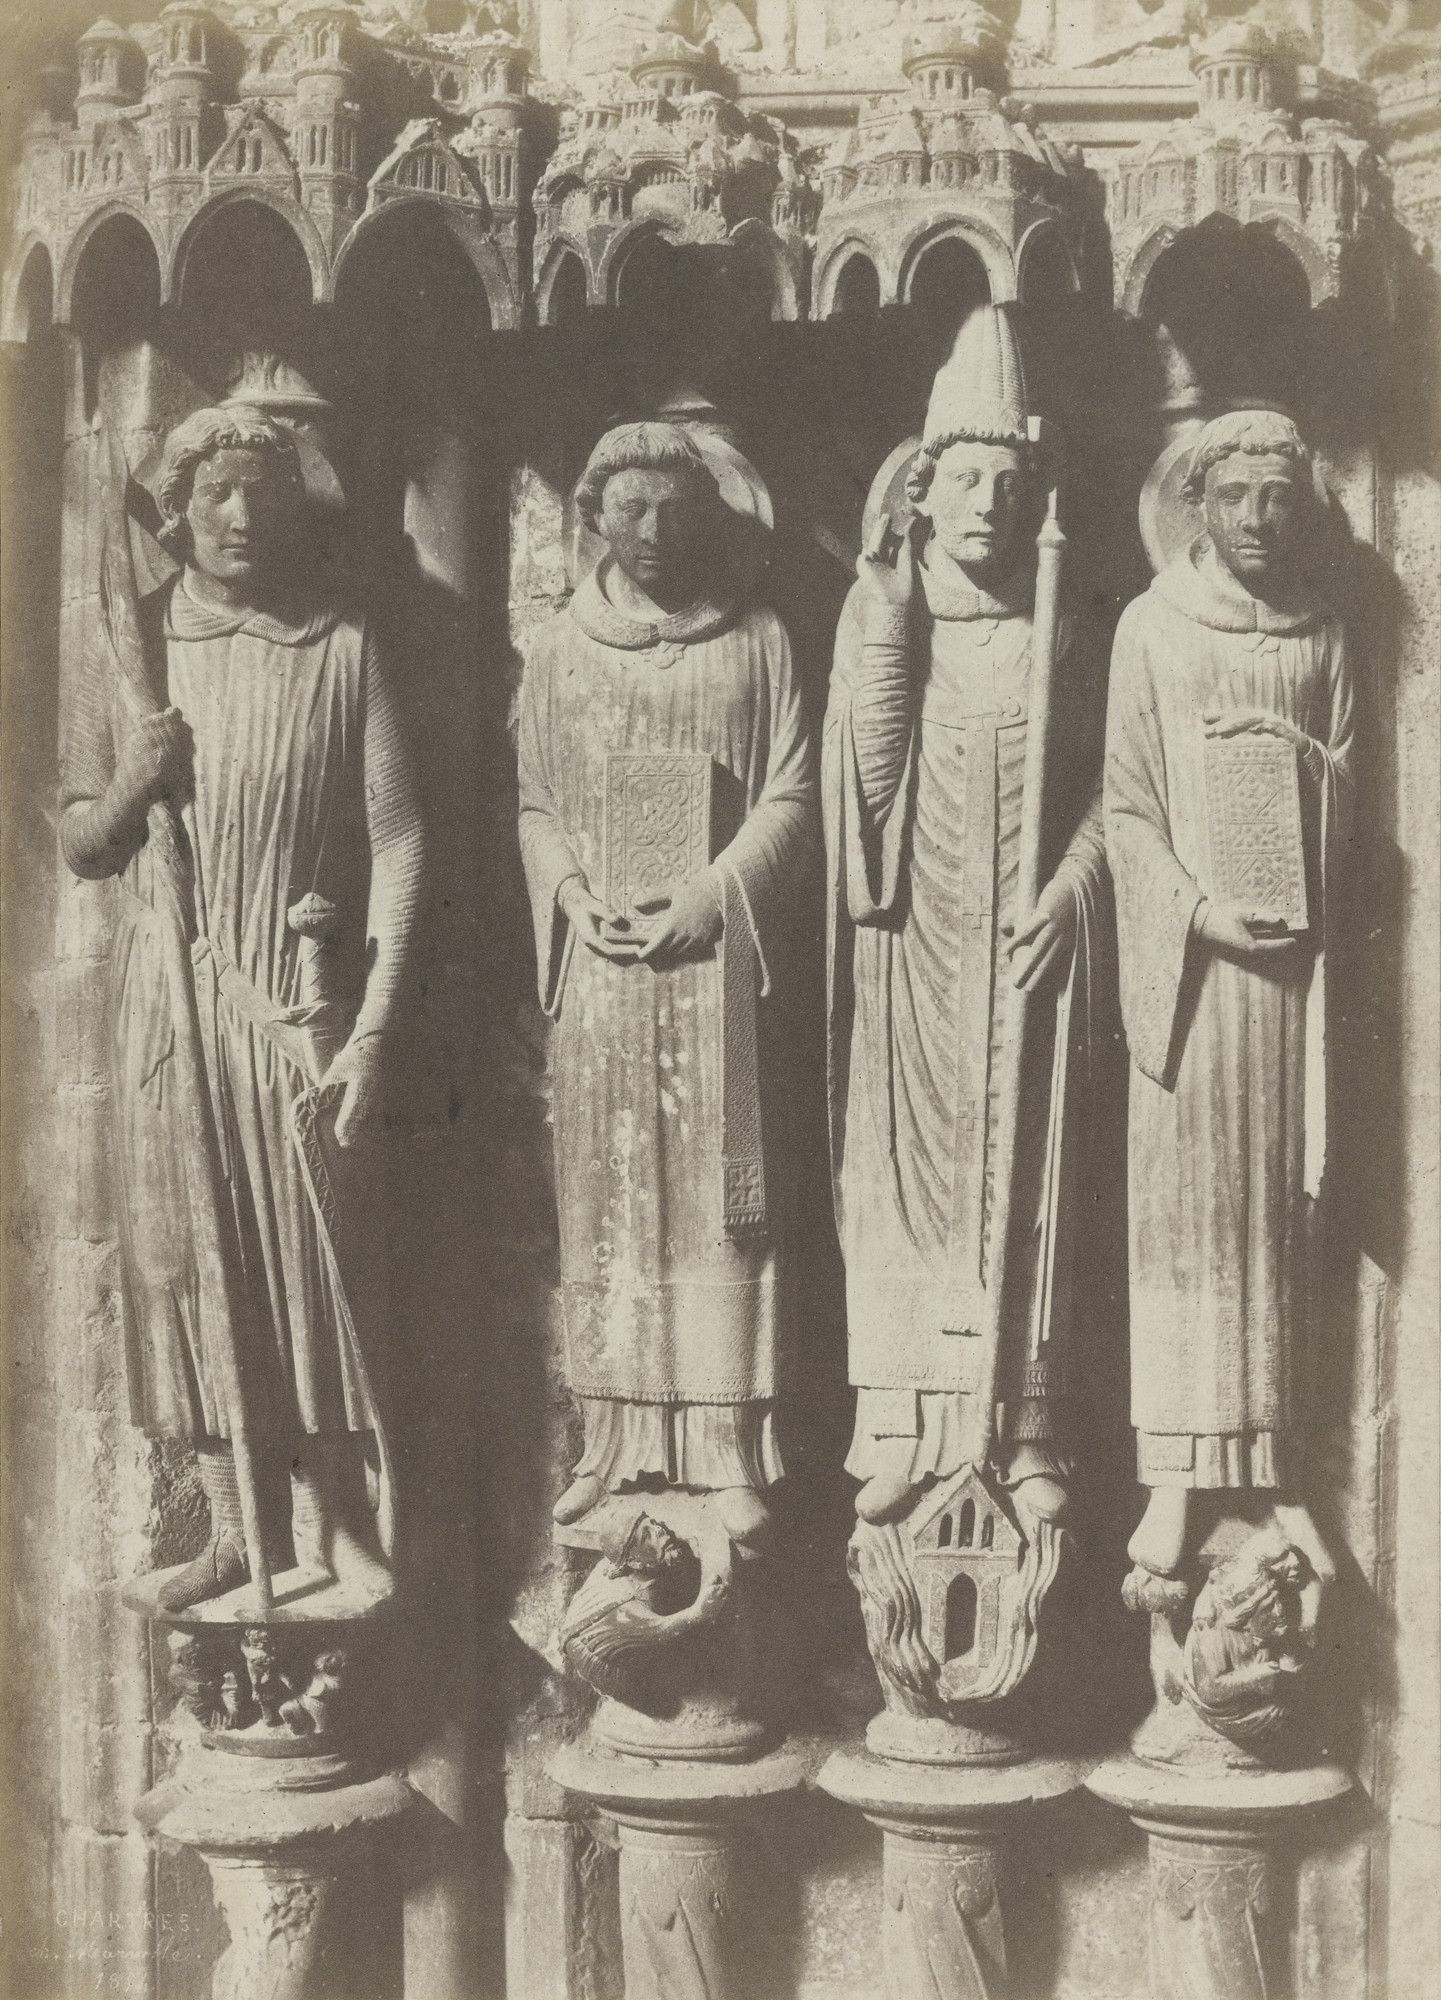 Charles Marville. Figures, South Portal, Chartres Cathedral. 1854